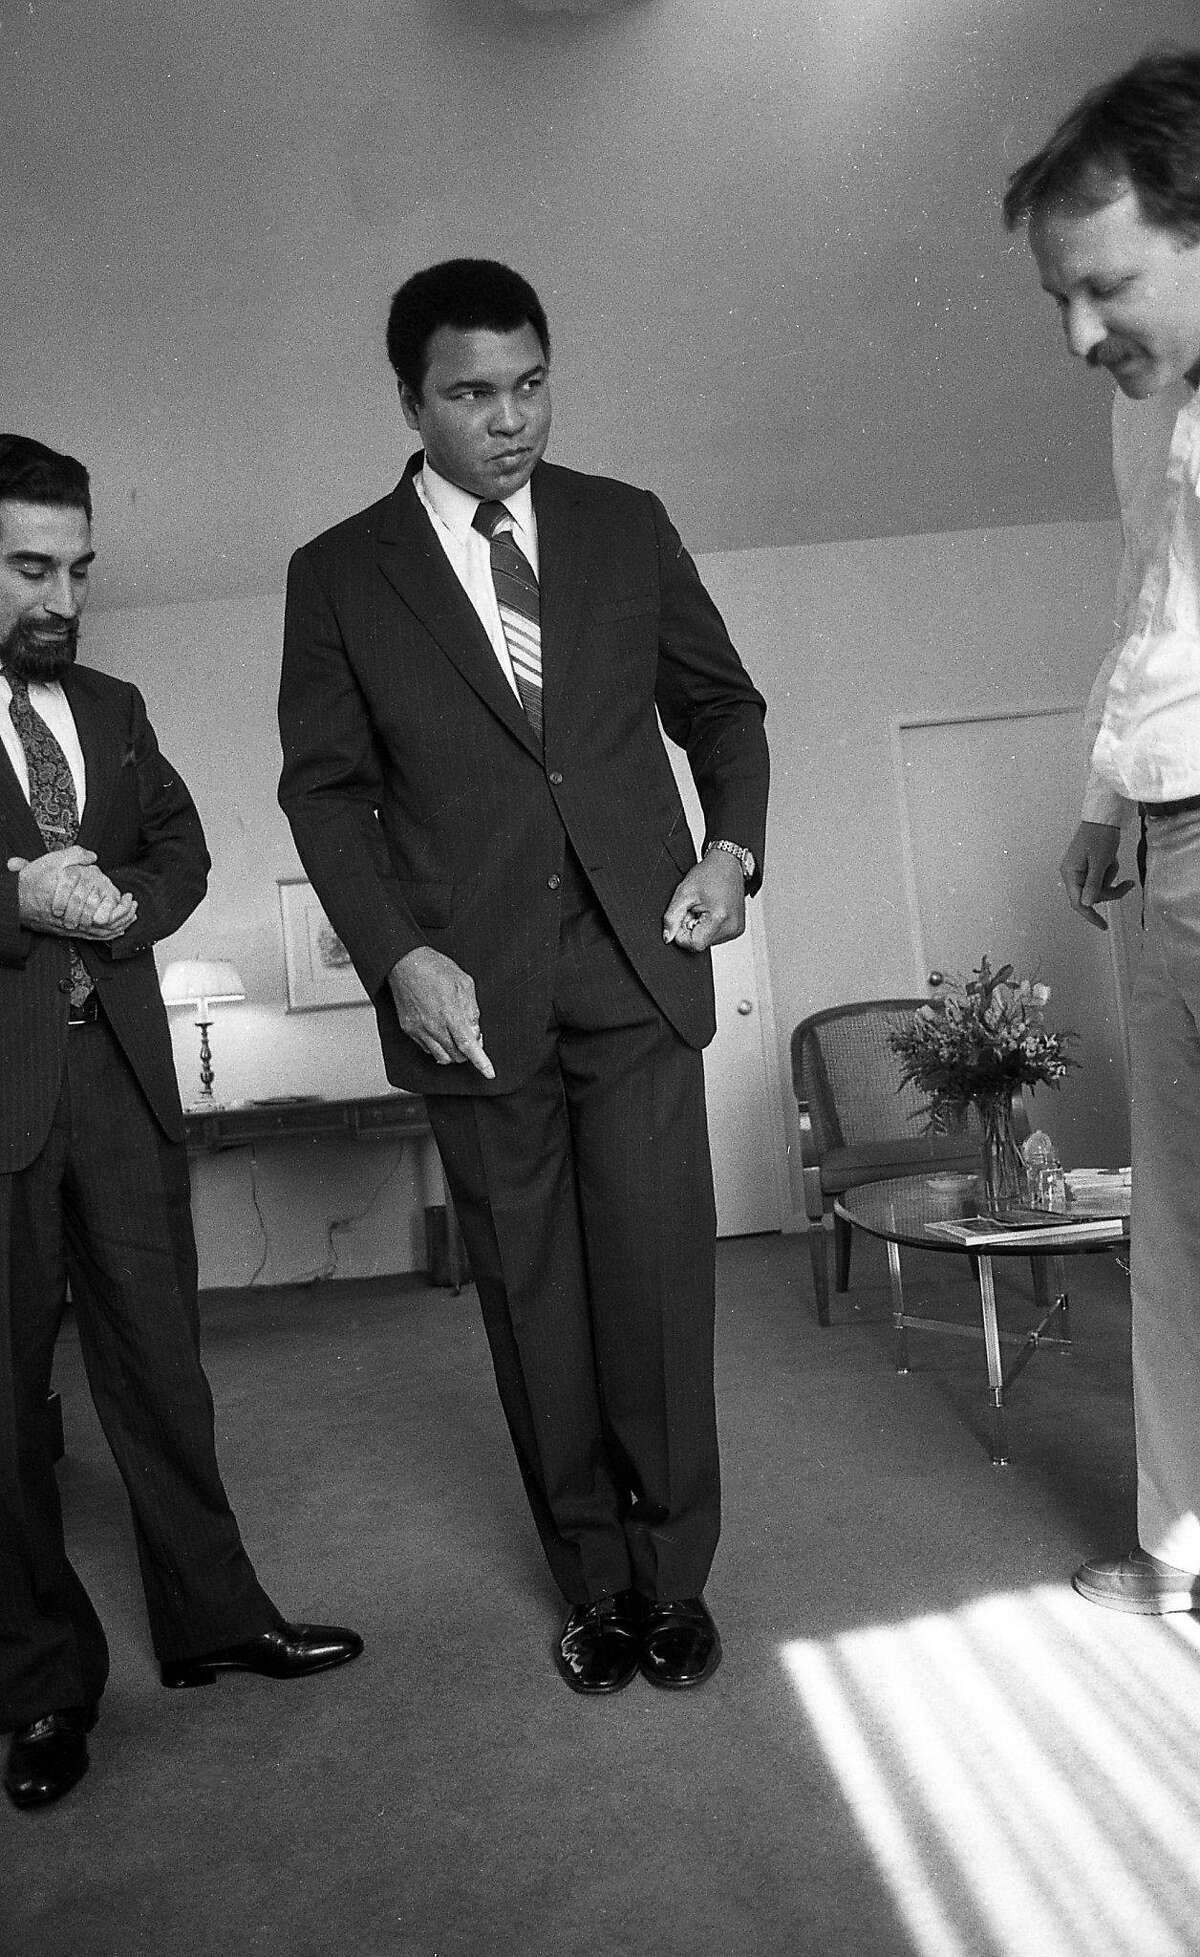 Muhammad Ali, with his road manager Avudi Mahdi (left) and San Francisco Chronicle reporter Jim Doyle (right), pretends to levitate. On May 1, 1988, Ali was staying at the Clift Hotel in San Francisco, and hours earlier had been declared missing by police.